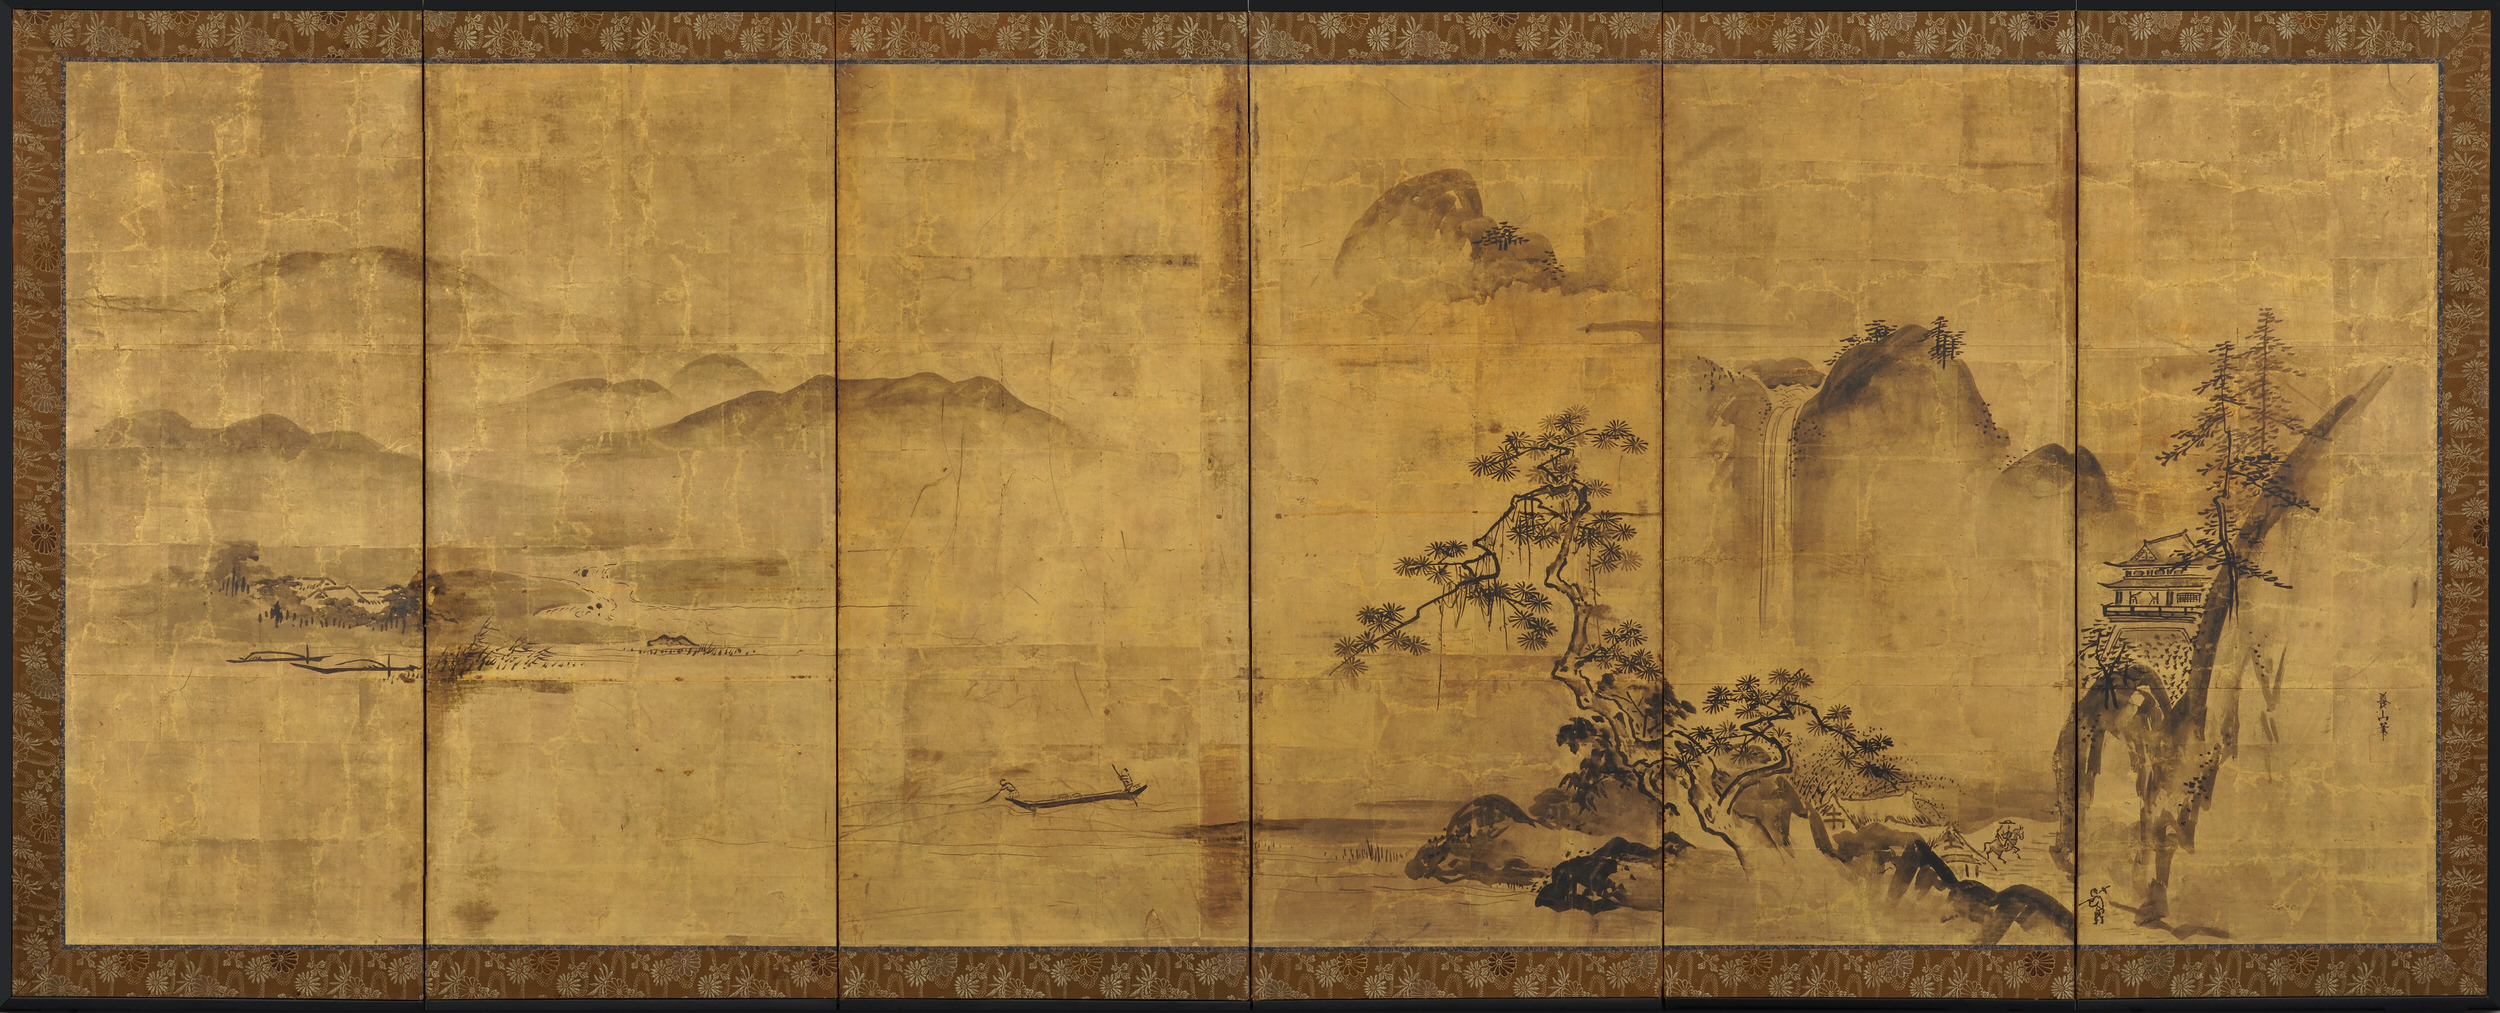 1688-1704). Japanese gold leaf screen. Ink